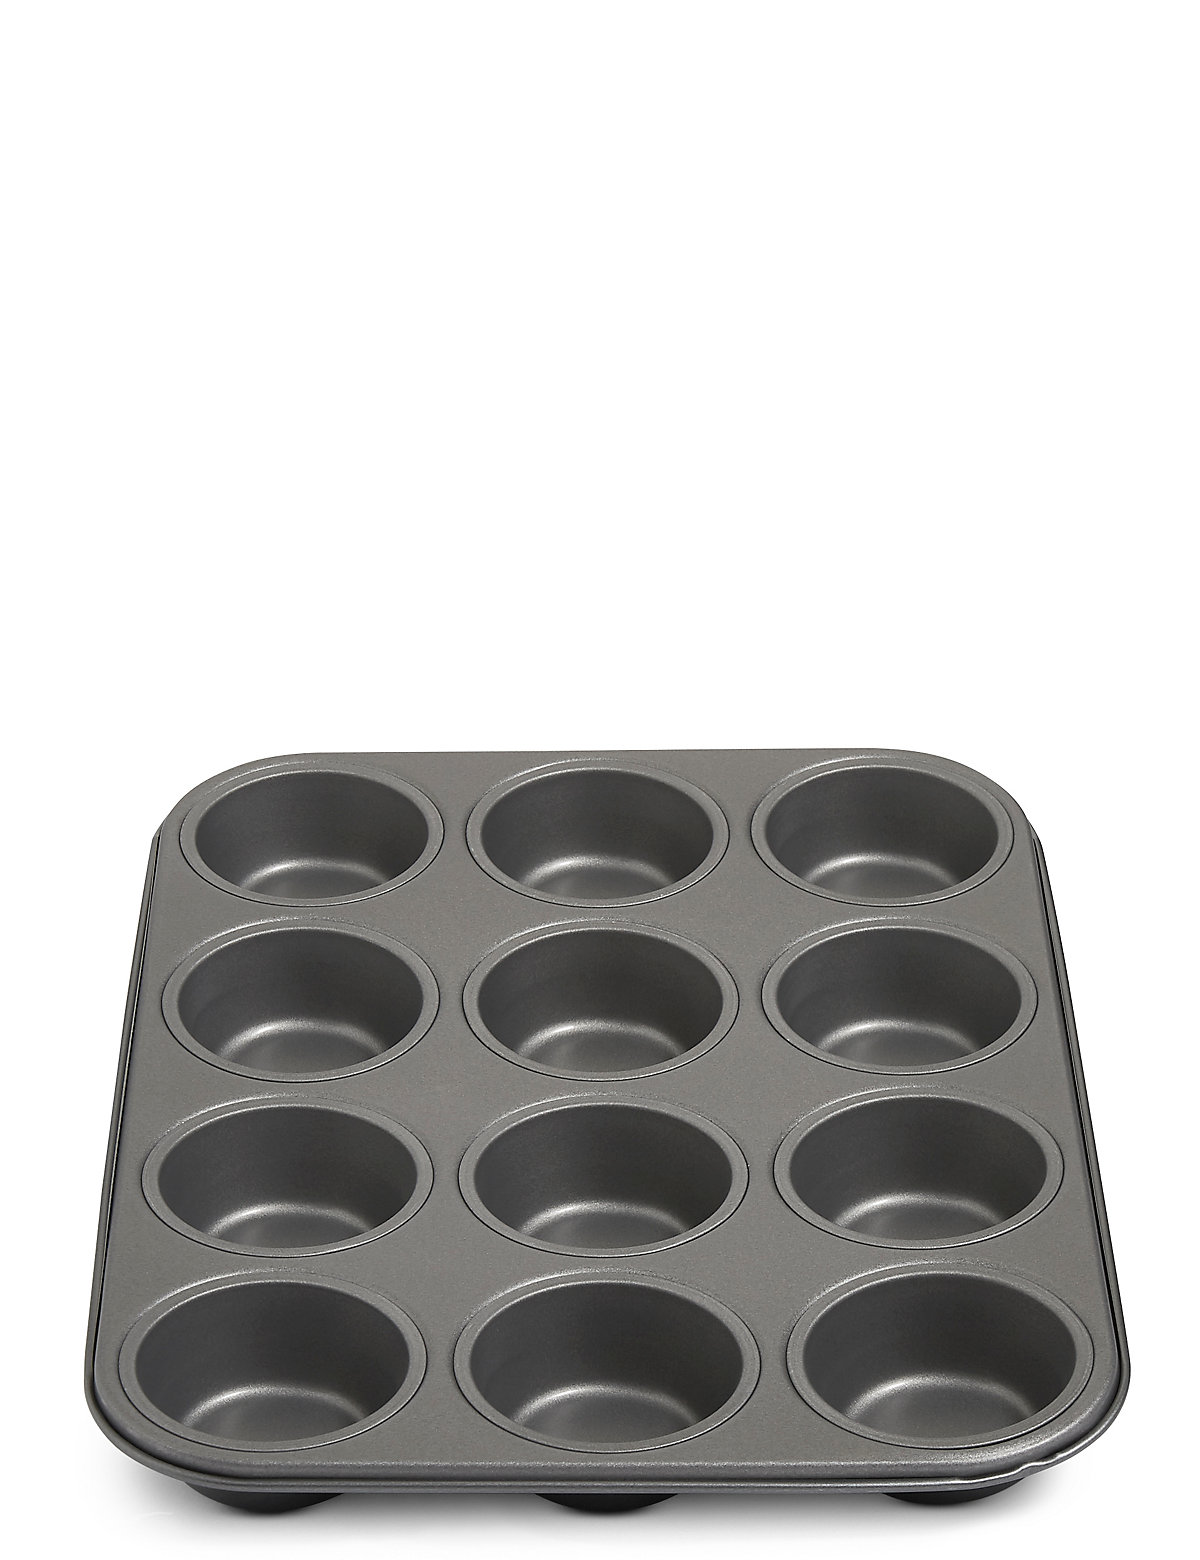 Image of 12 Cup Muffin Tray